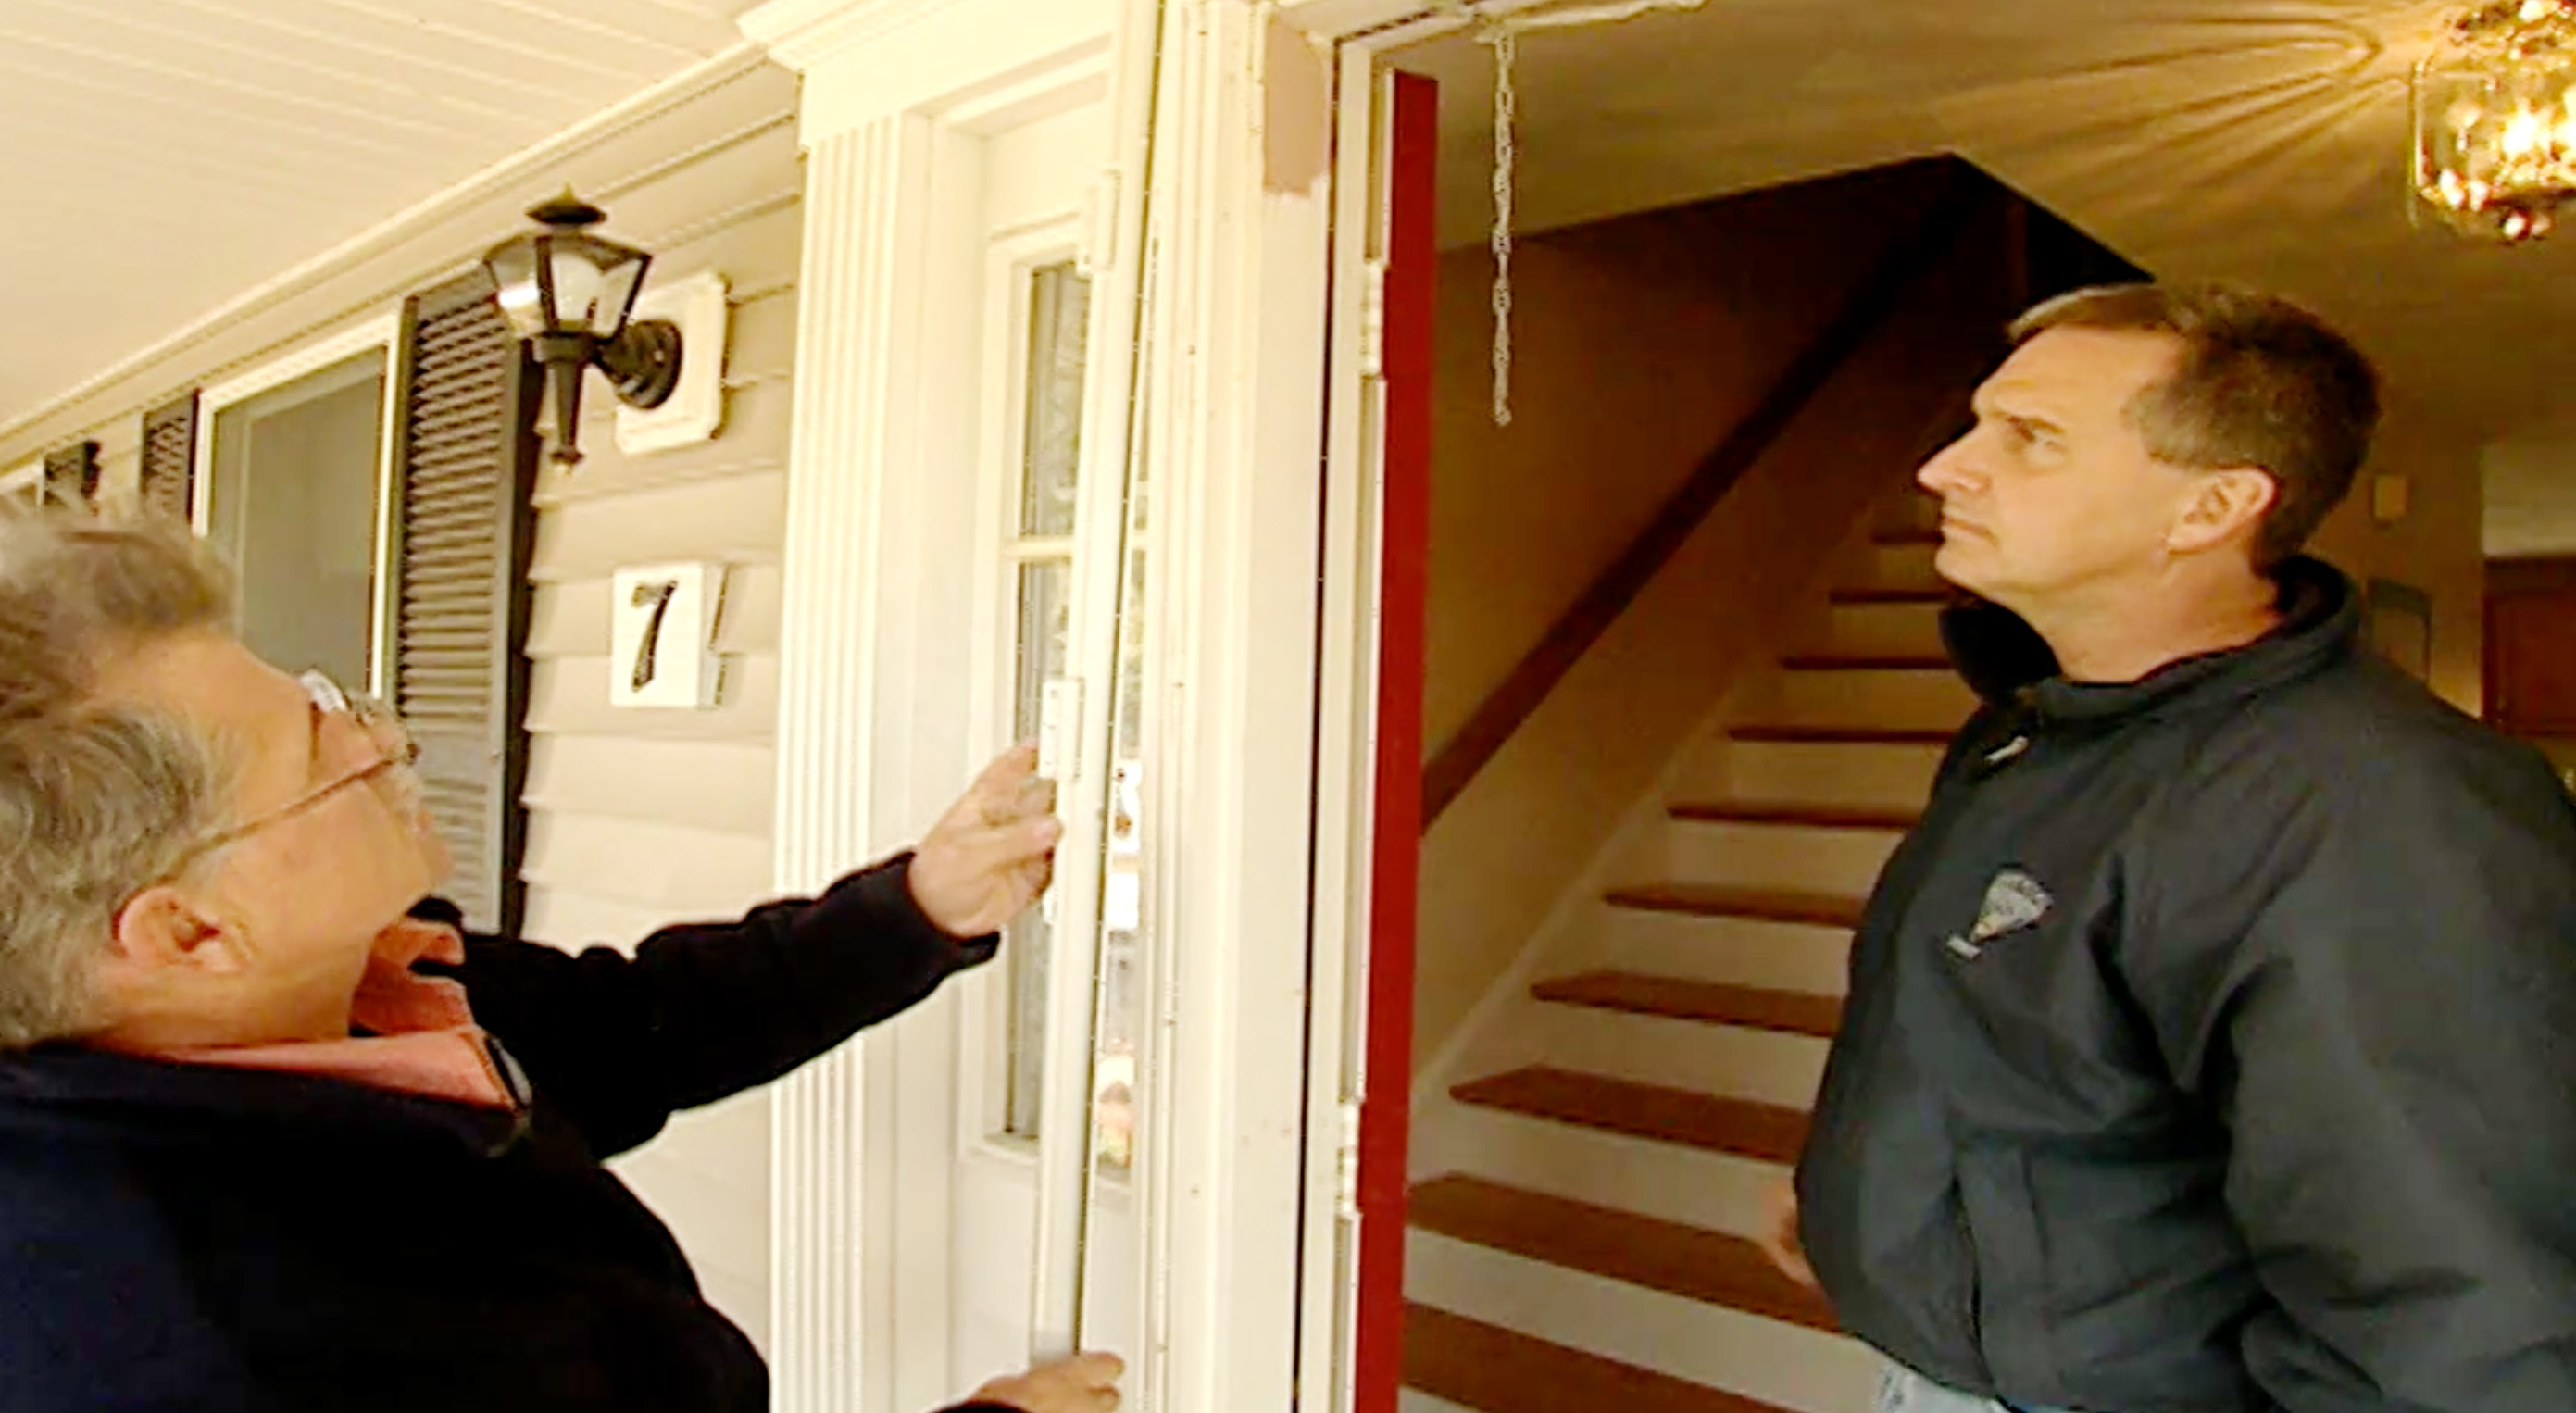 Two people inspect a frosted screen door.